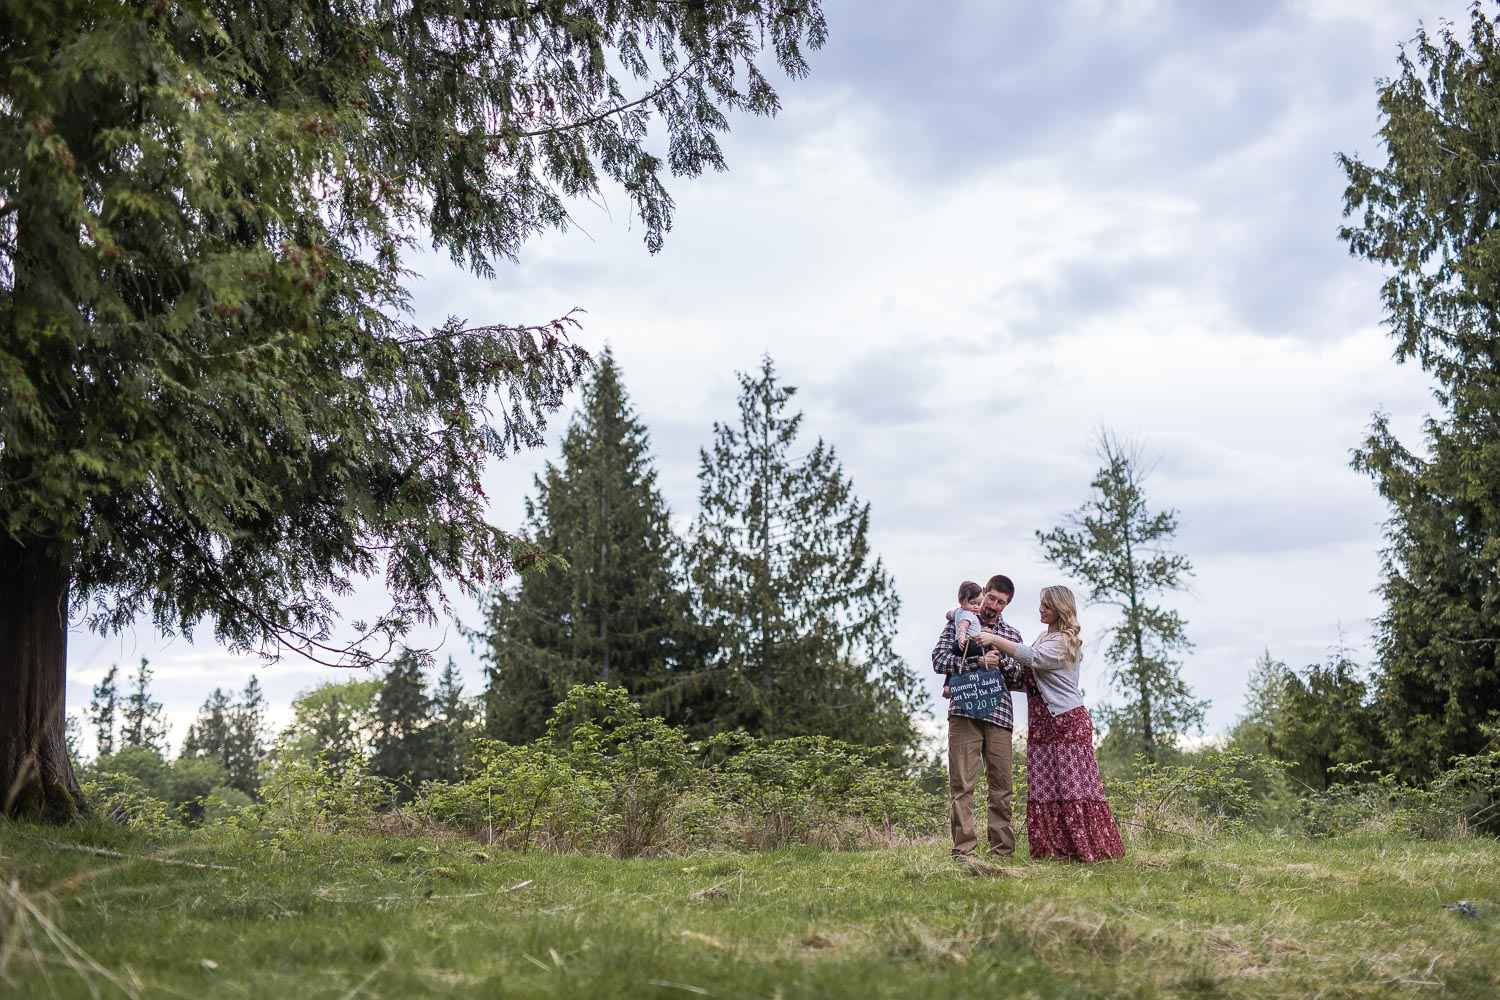 backyard-country-style-engagement-harth-photography-06.jpg